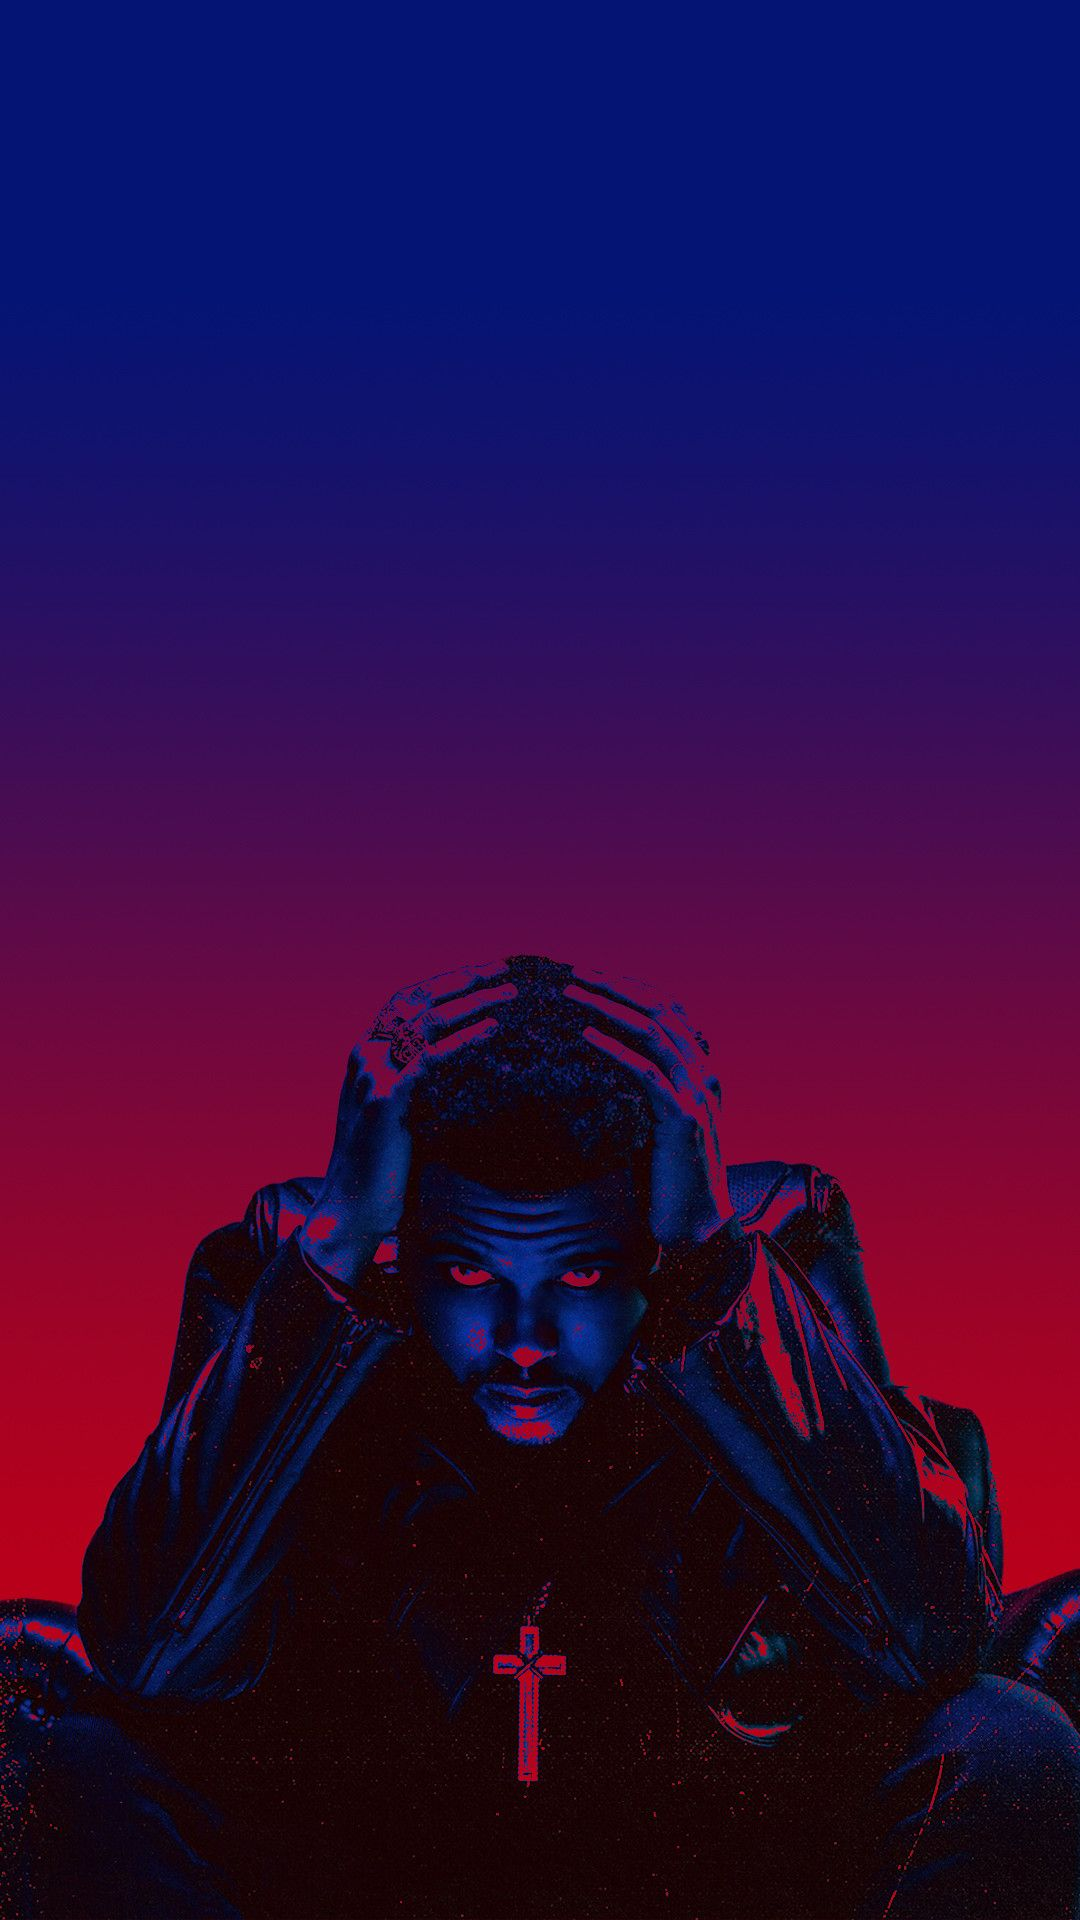 Iphone Cool Wallpapers Of Rappers